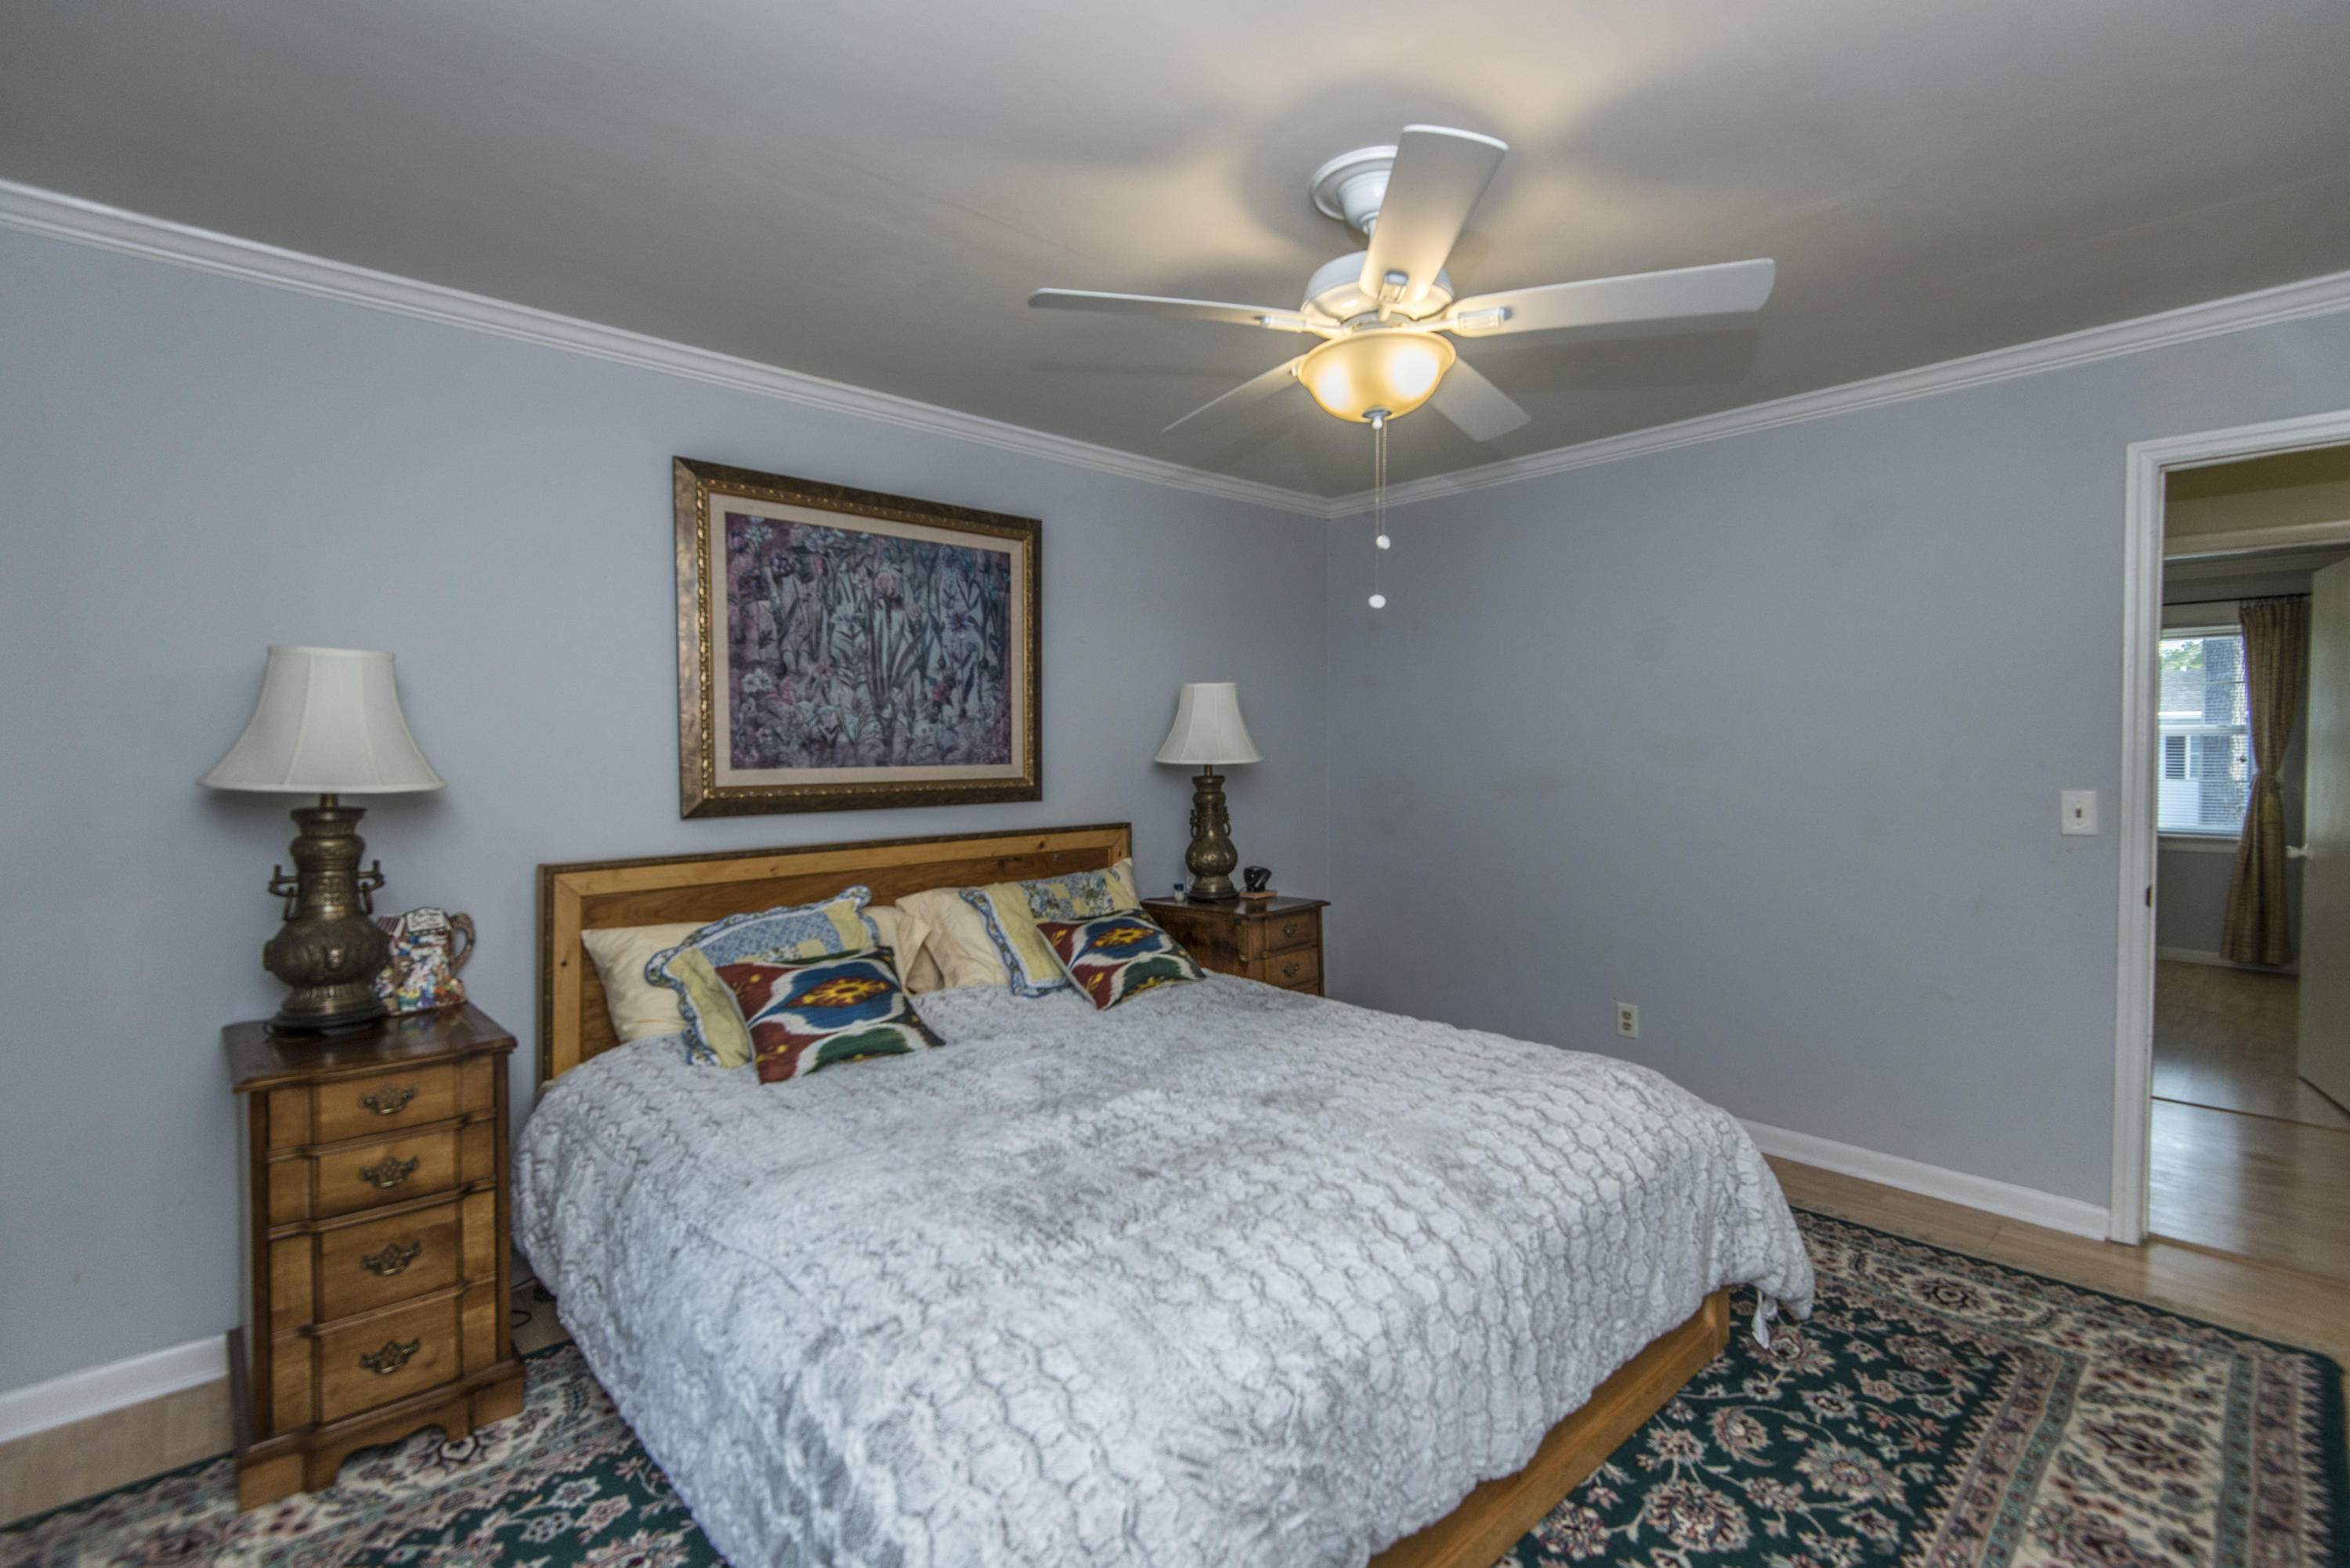 Rivers Point Row Homes For Sale - 21 Rivers Point Row, Charleston, SC - 26